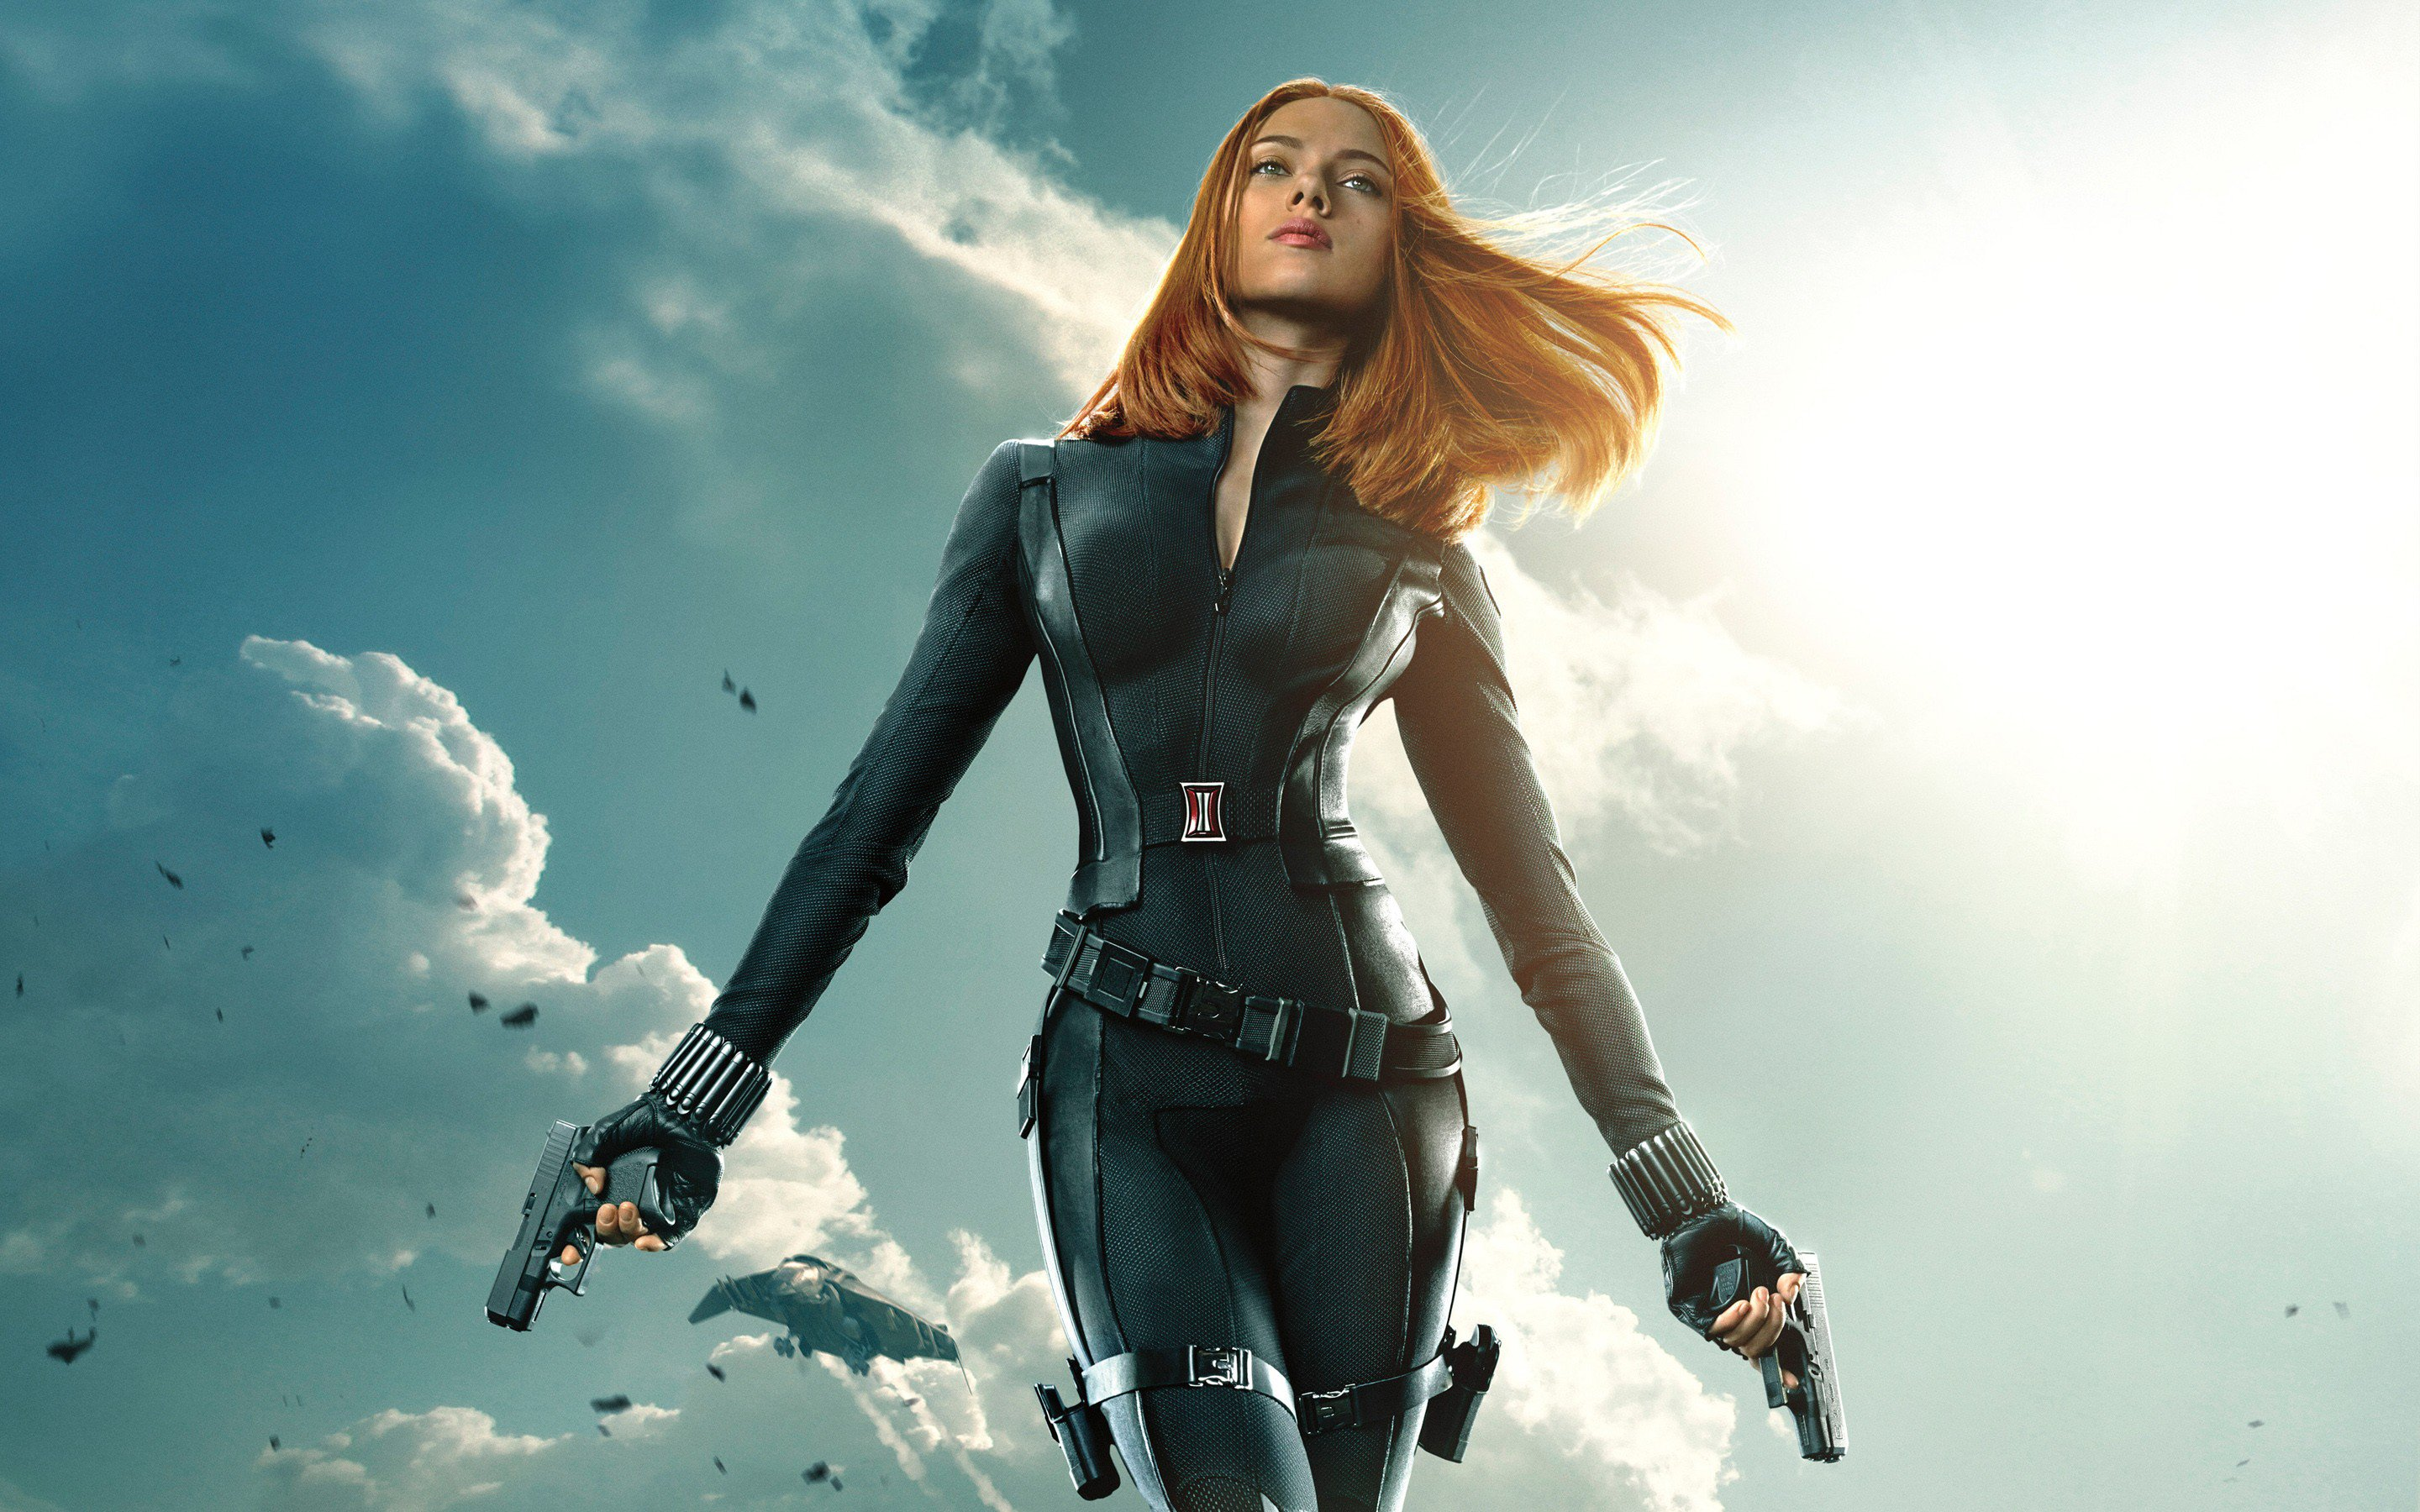 Black widow full hd hd movies 4k wallpapers images for American cuisine movie download